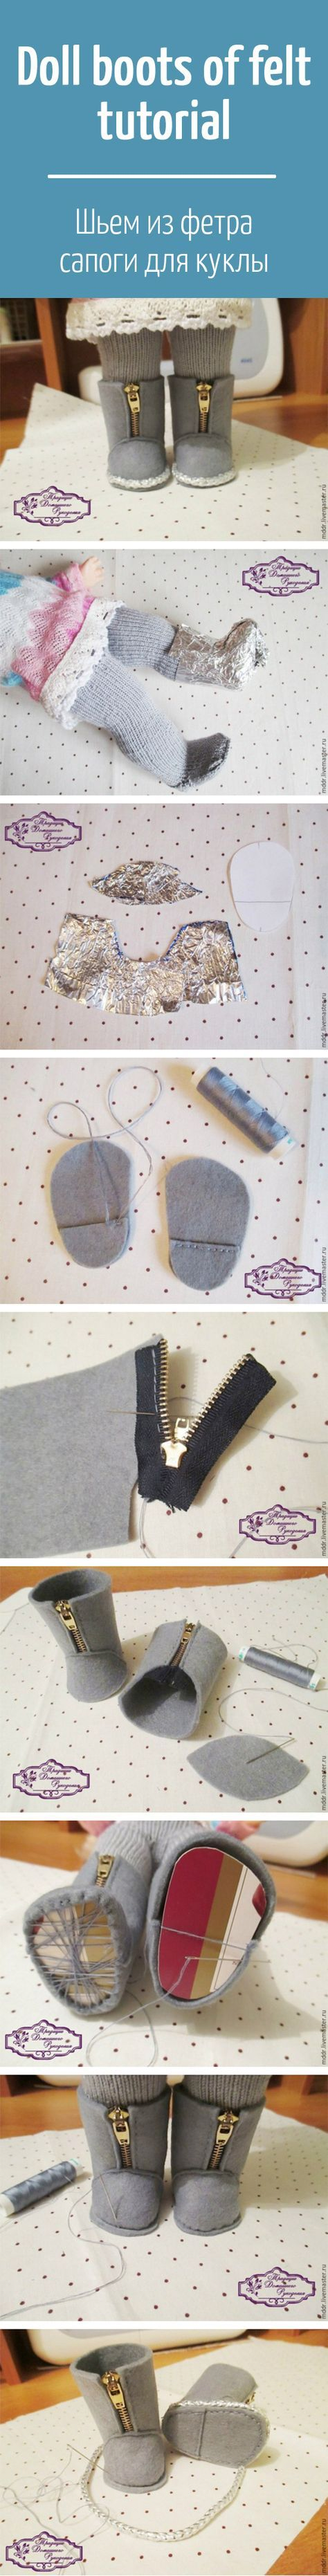 clever way to make doll footwear